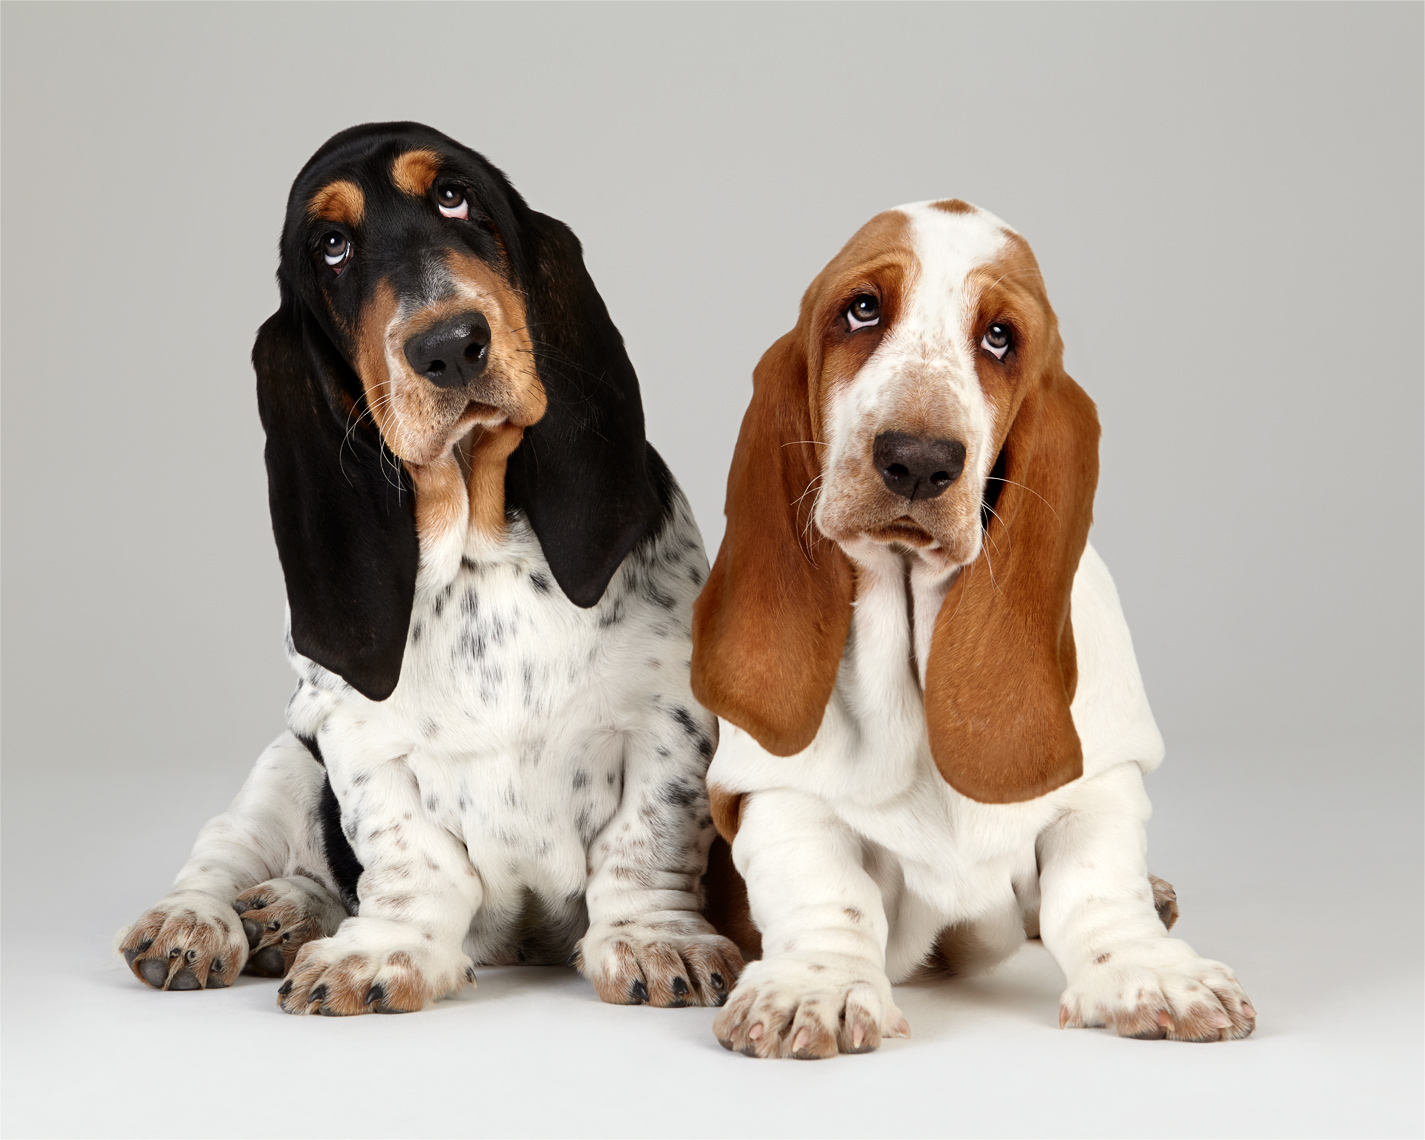 Basset Hound puppies sitting